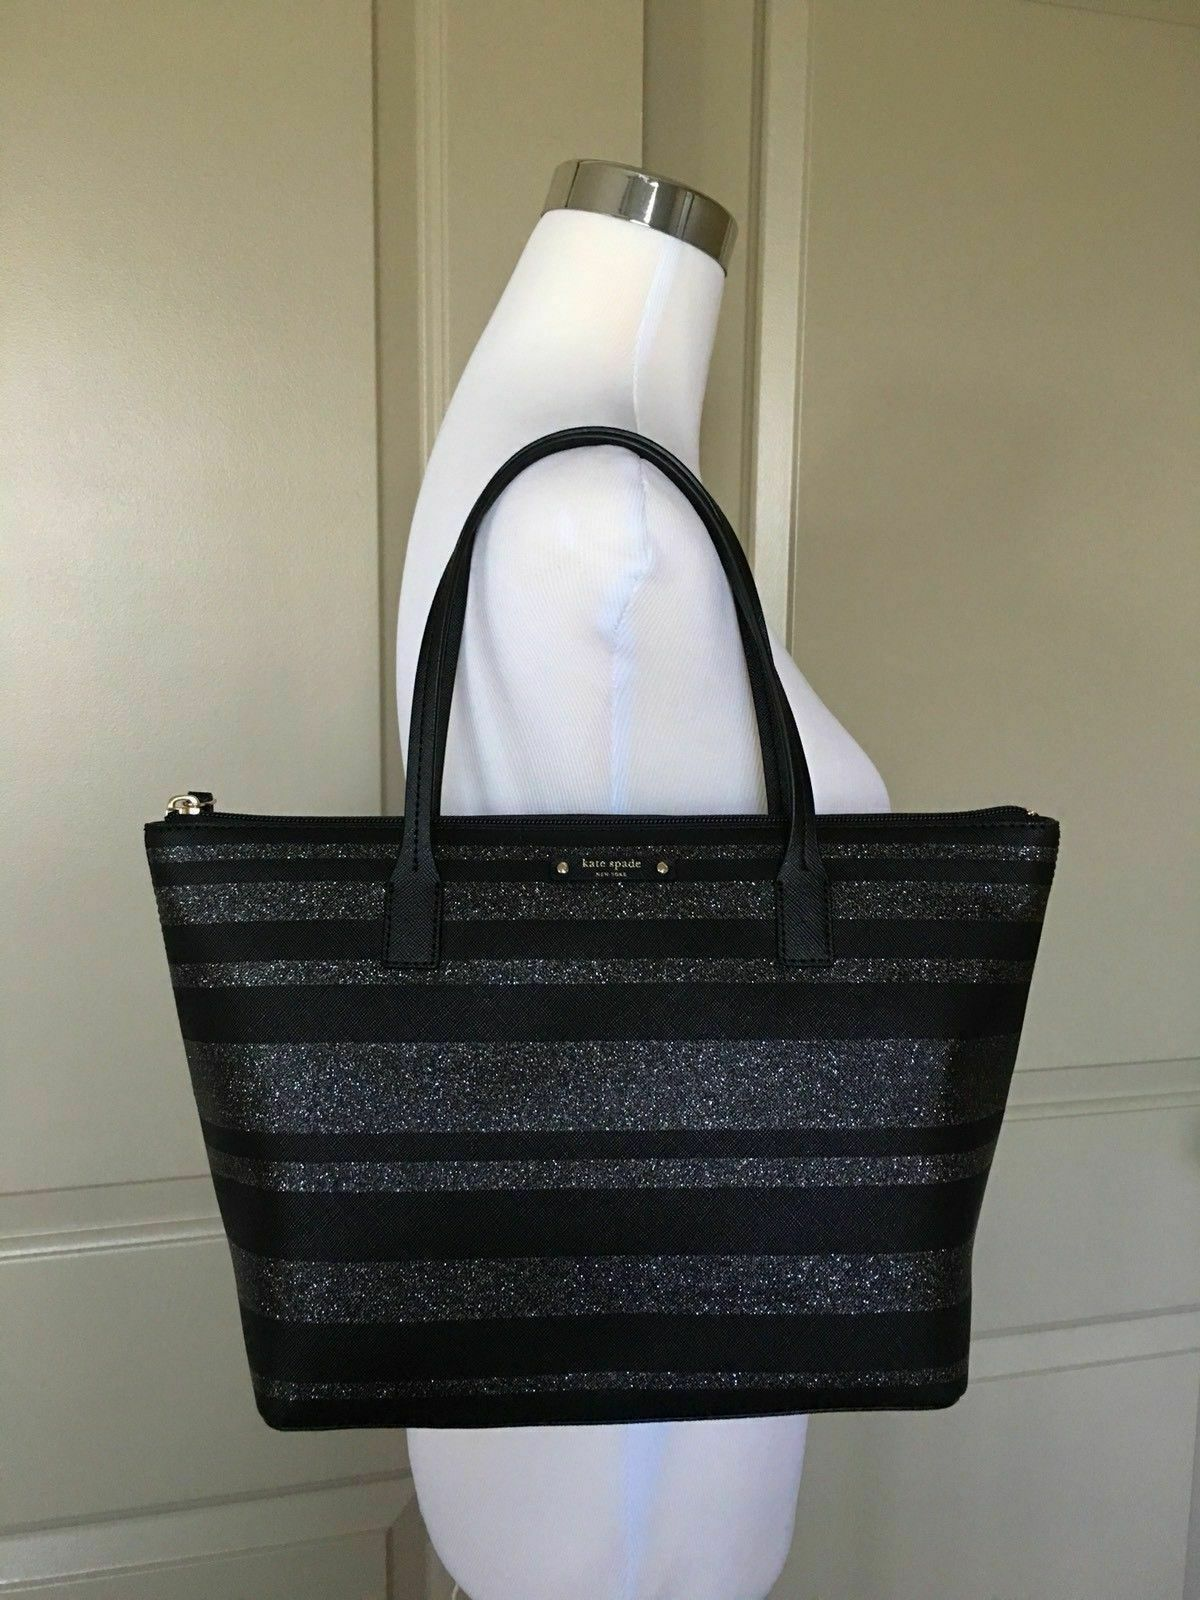 Kate Spade Hani Haven Lane Black Glitter Strap Tote Bag WKRU4787 image 4